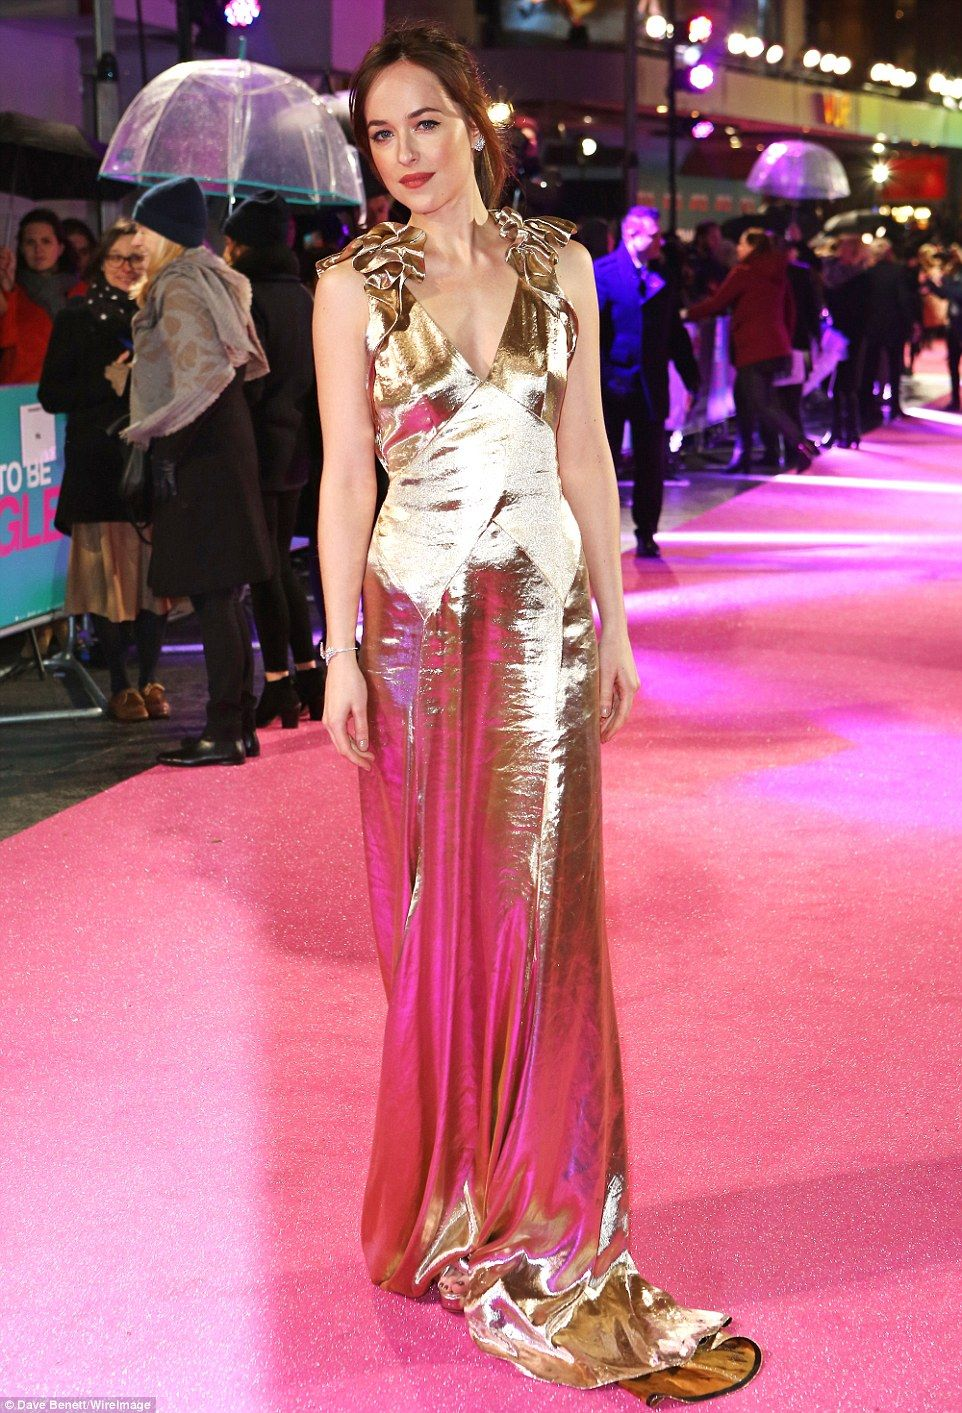 Dakota johnson shimmers in gold lam gown at how to be single premiere how to shimmer dakota johnson was the shining star as she led the glamour at ccuart Choice Image